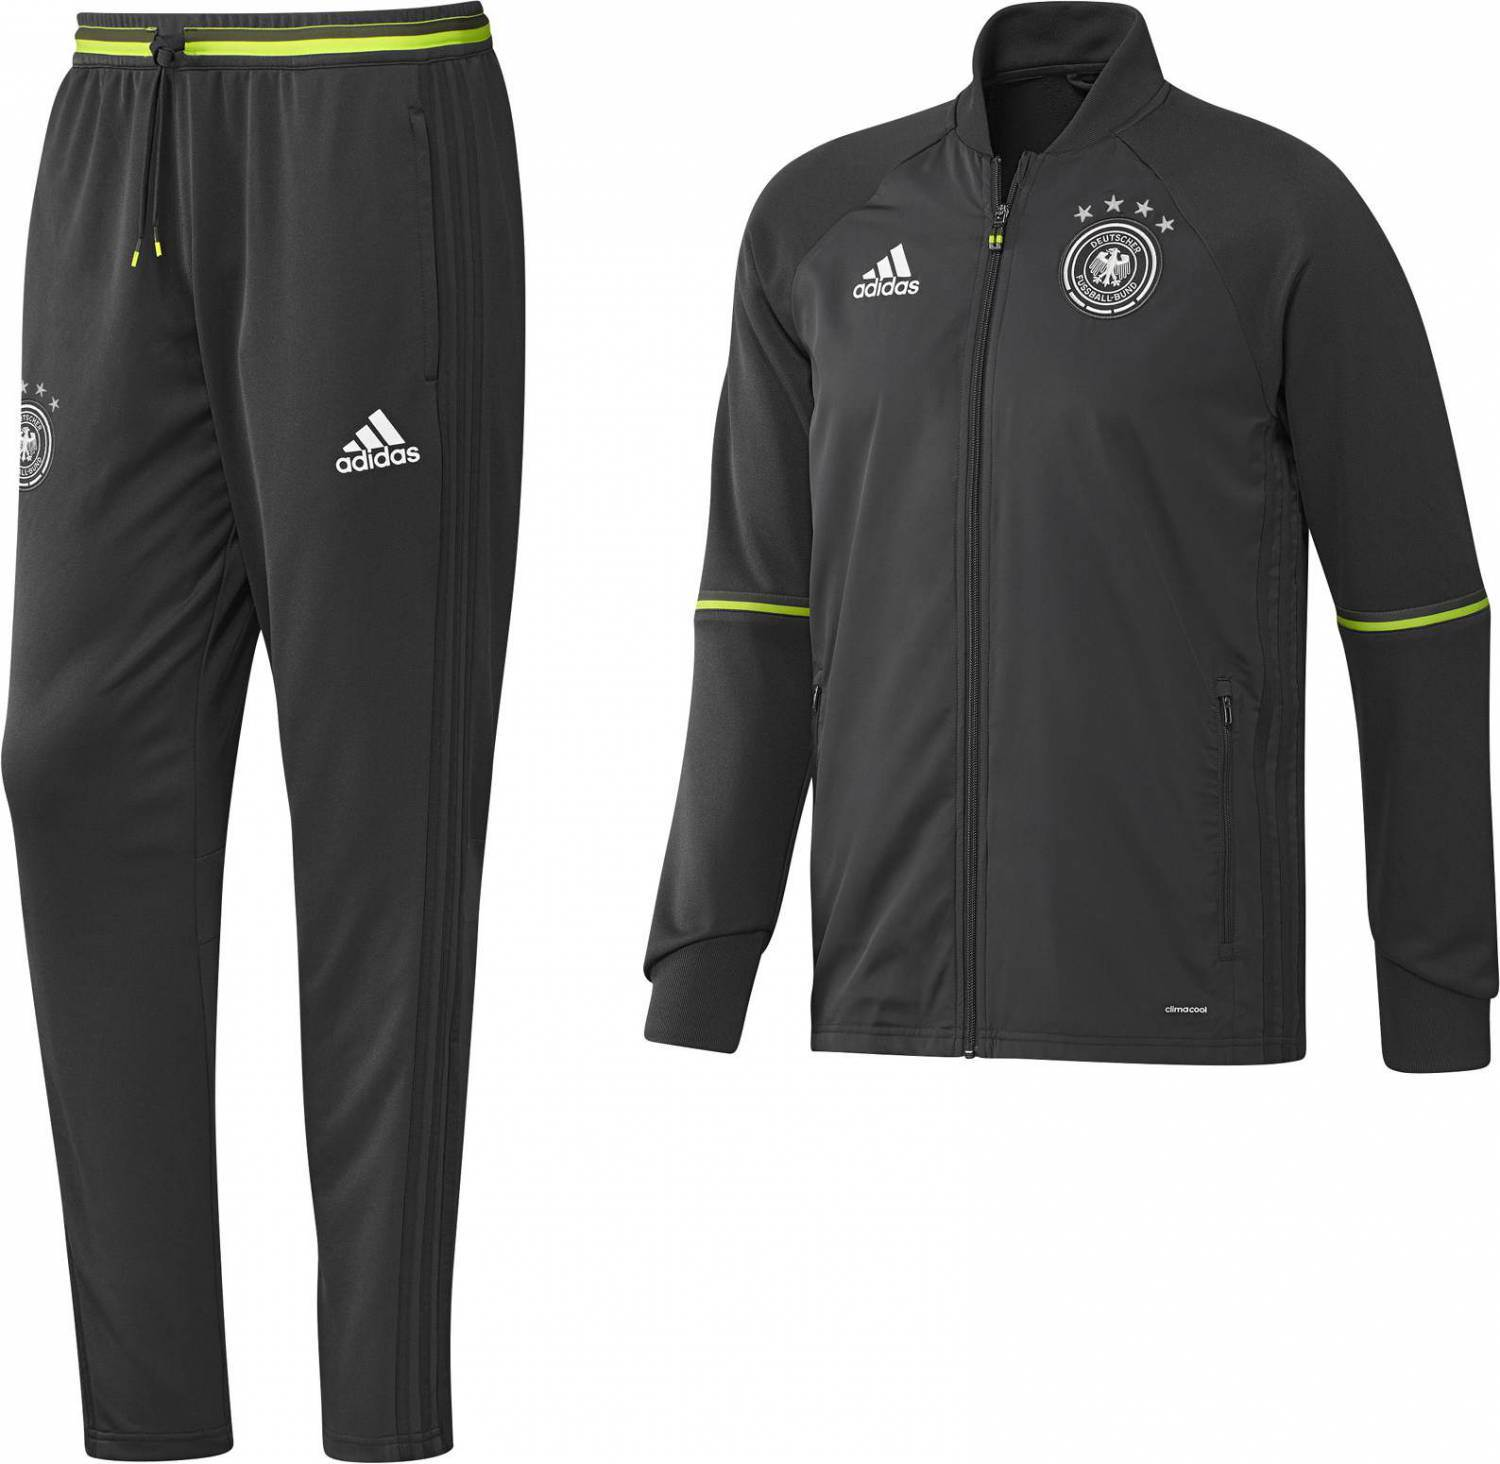 adidas dfb trainingsanzug em 2016 ebay. Black Bedroom Furniture Sets. Home Design Ideas